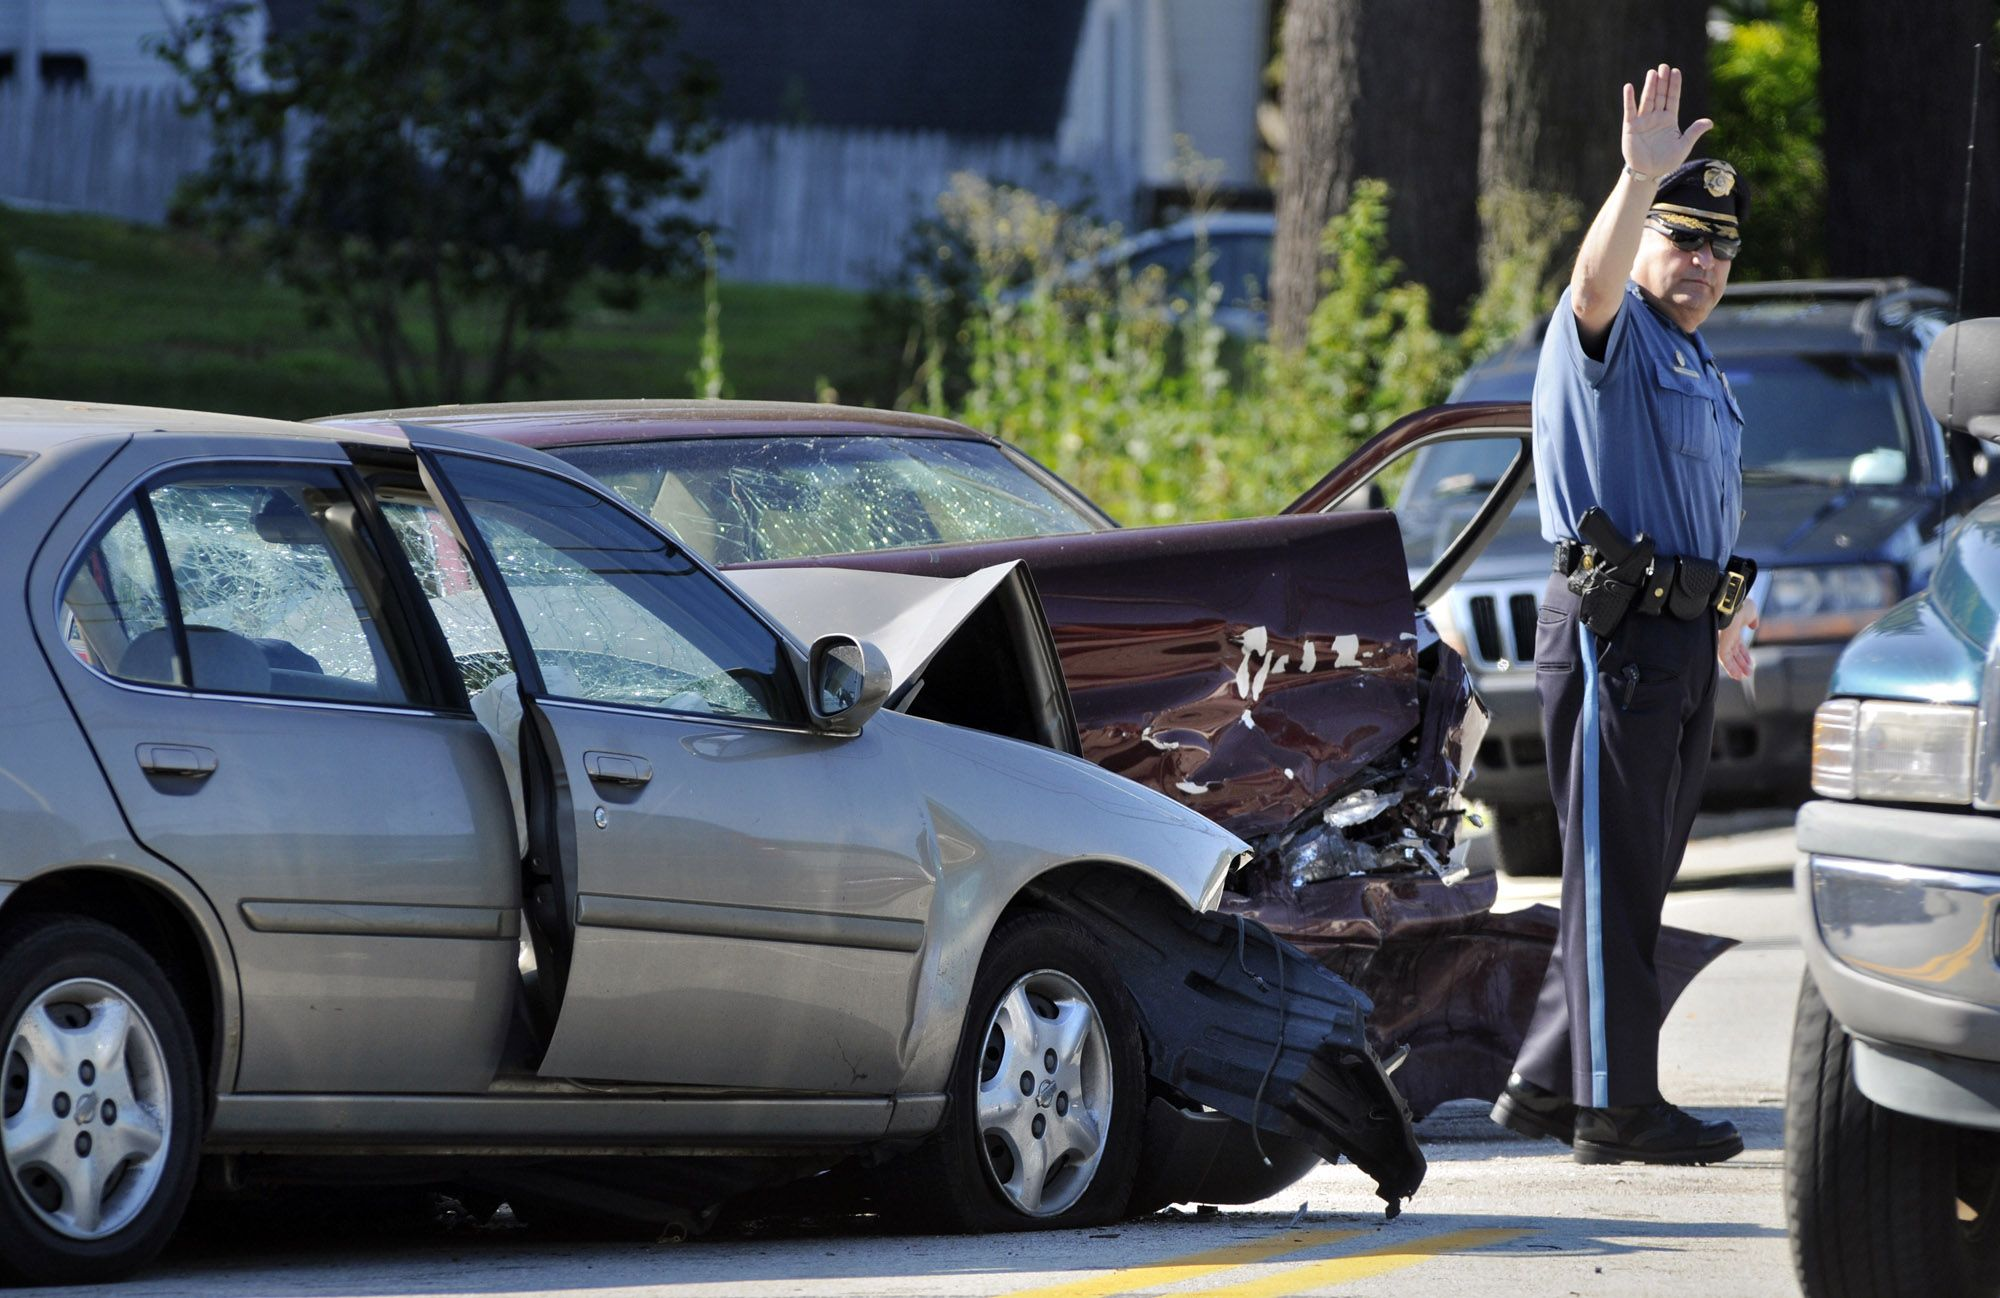 It Was A Disgusting Day I Just Lost My Favorite Car But It Once I Gain My Car Again By The Car Accident Lawyer Personal Injury Lawyer Car Accident Injuries